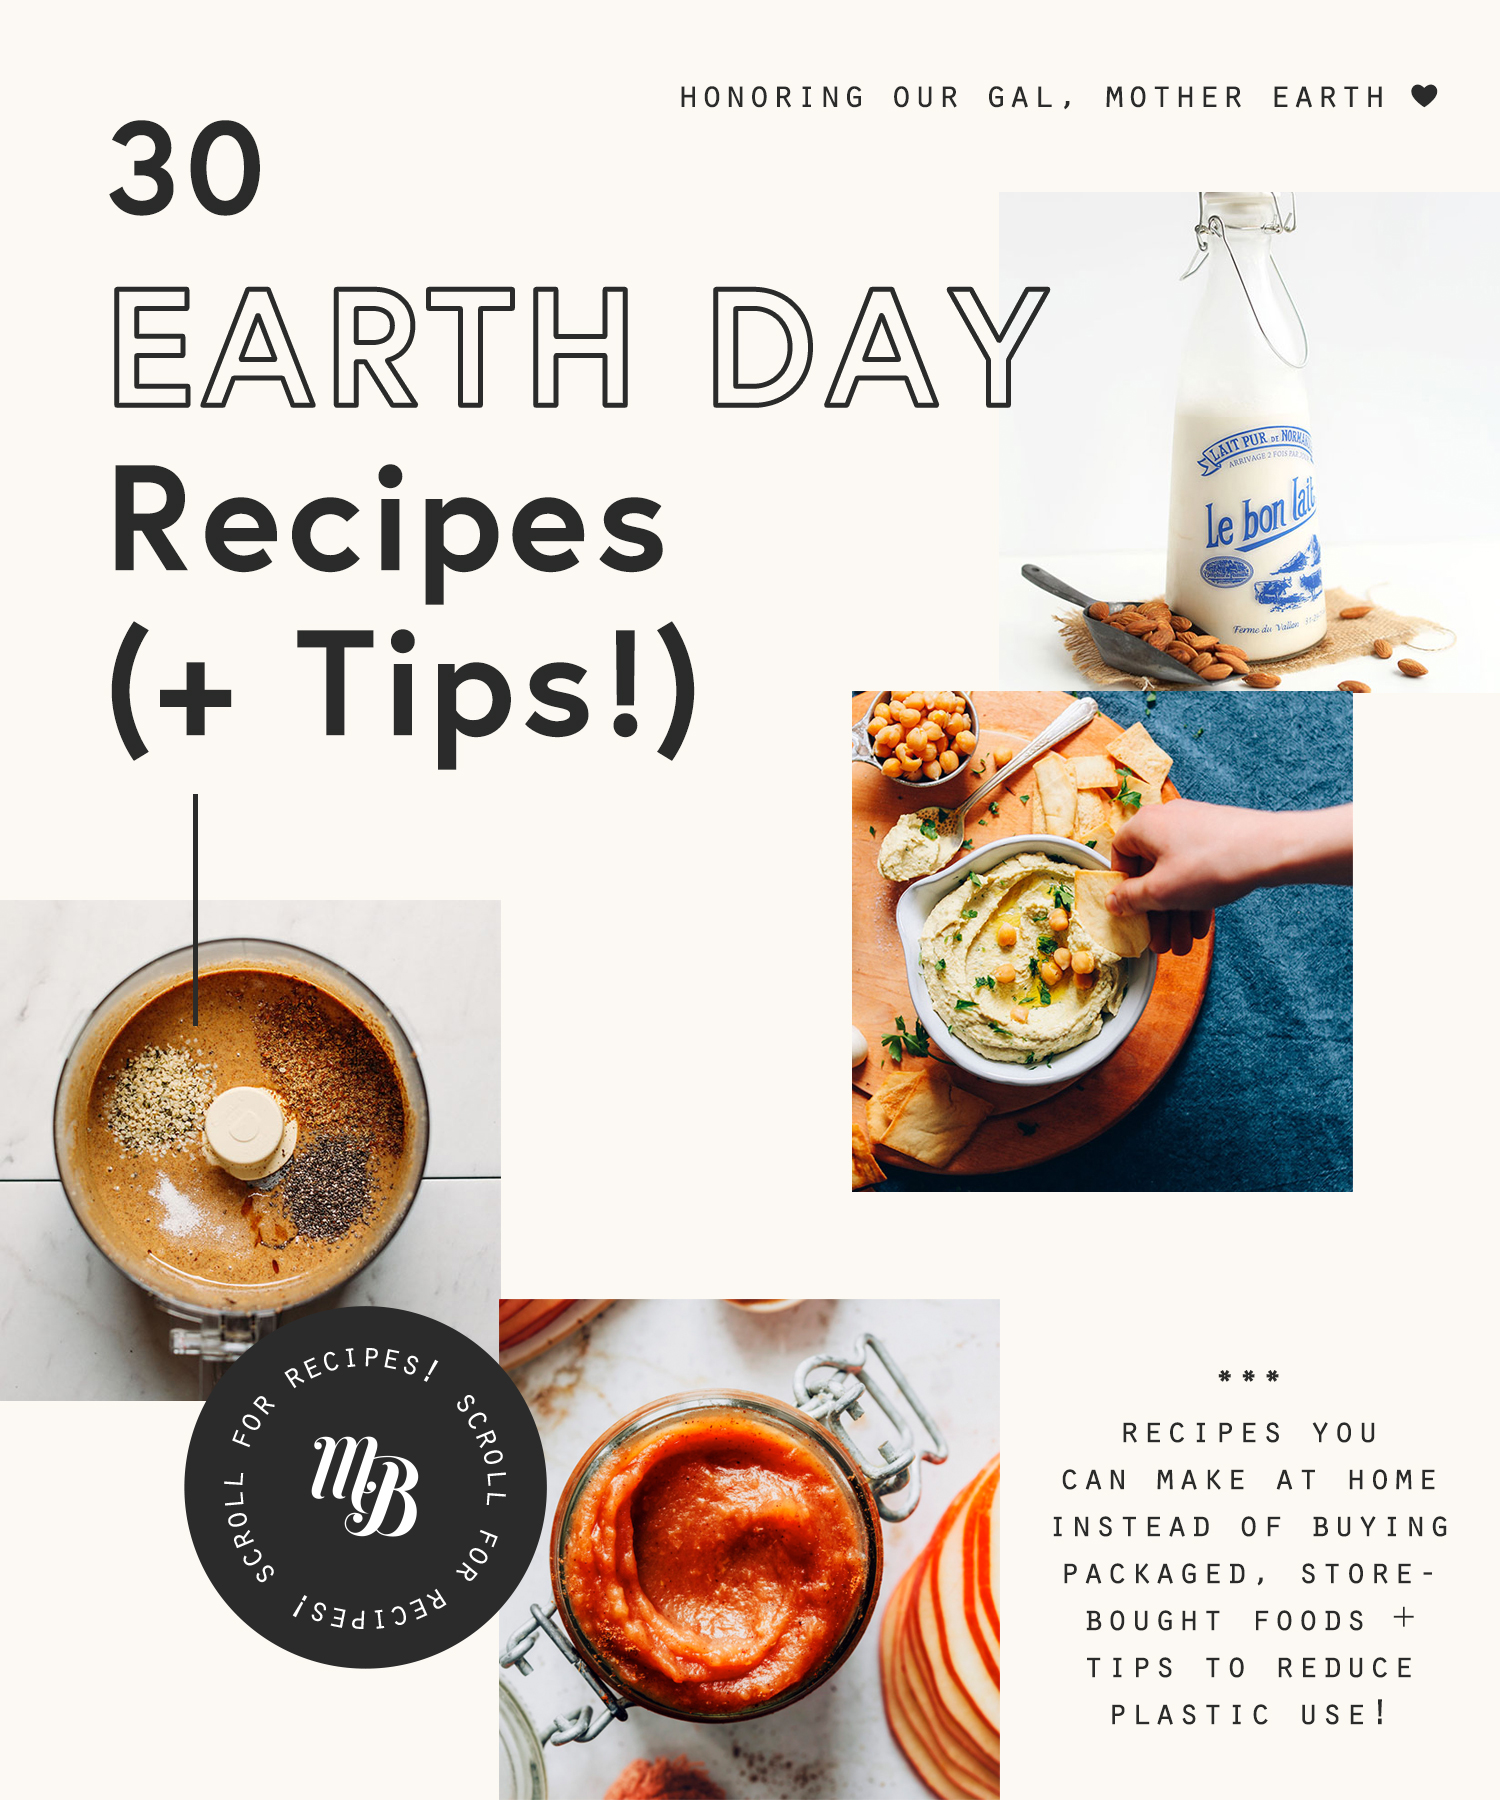 Homemade nut butter, apple butter, hummus, and almond milk for our round-up of Earth Day recipes